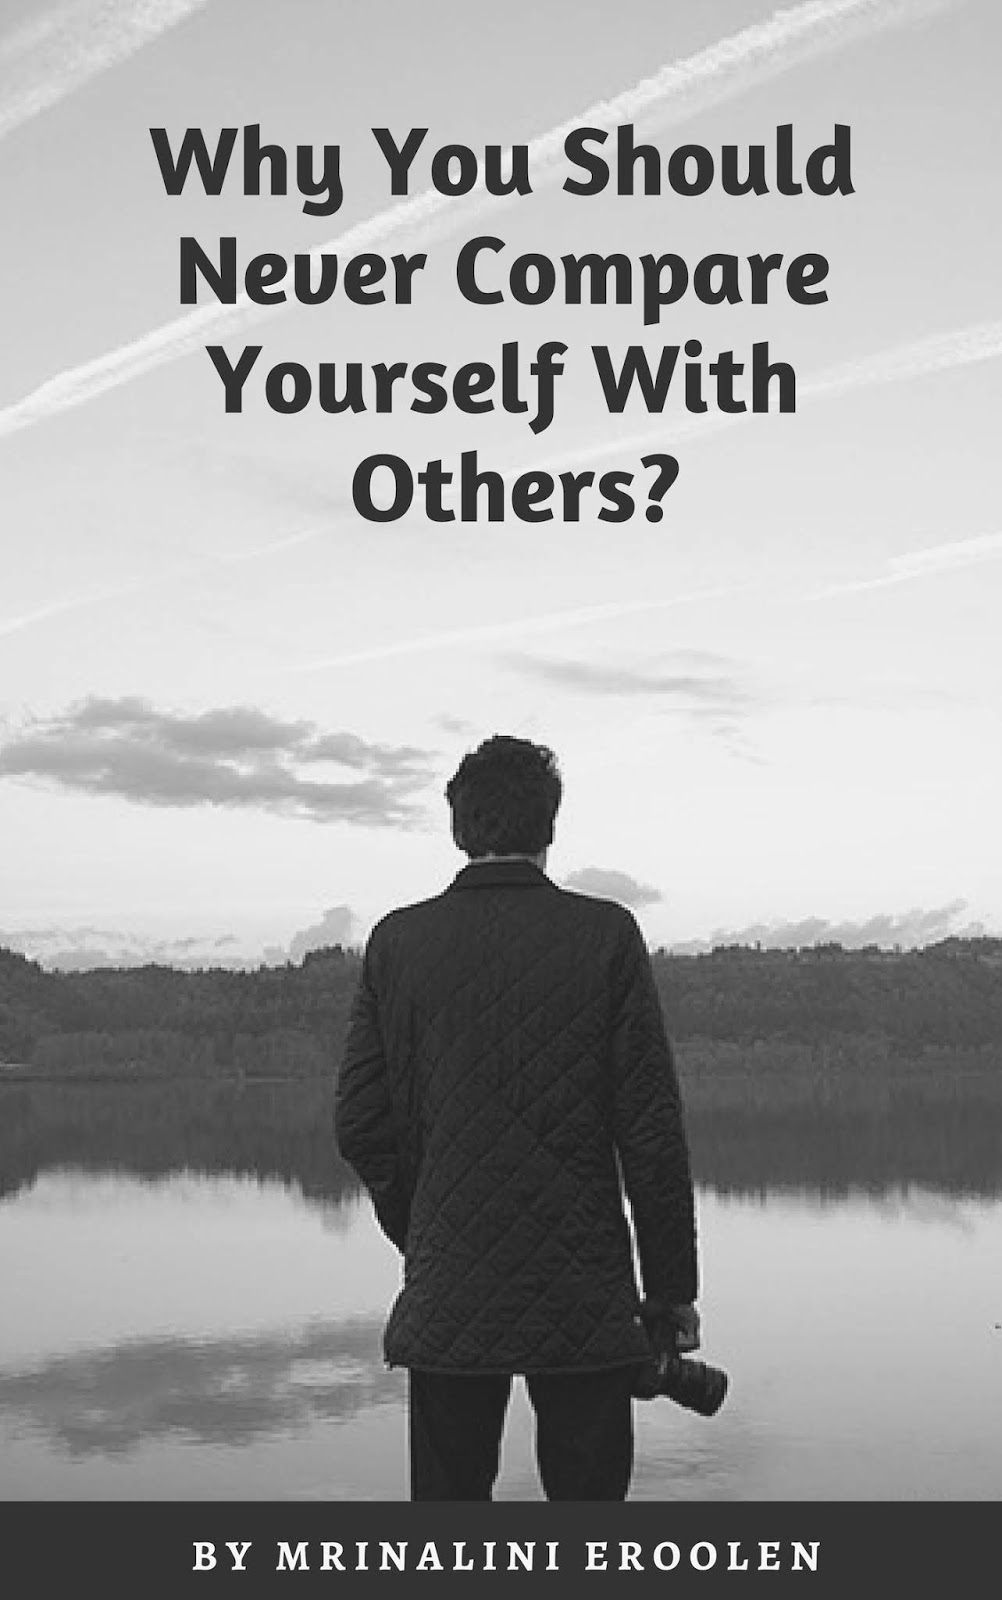 https://holidaysgiftsideas.blogspot.com/2019/02/why-you-should-never-compare-yourself.html